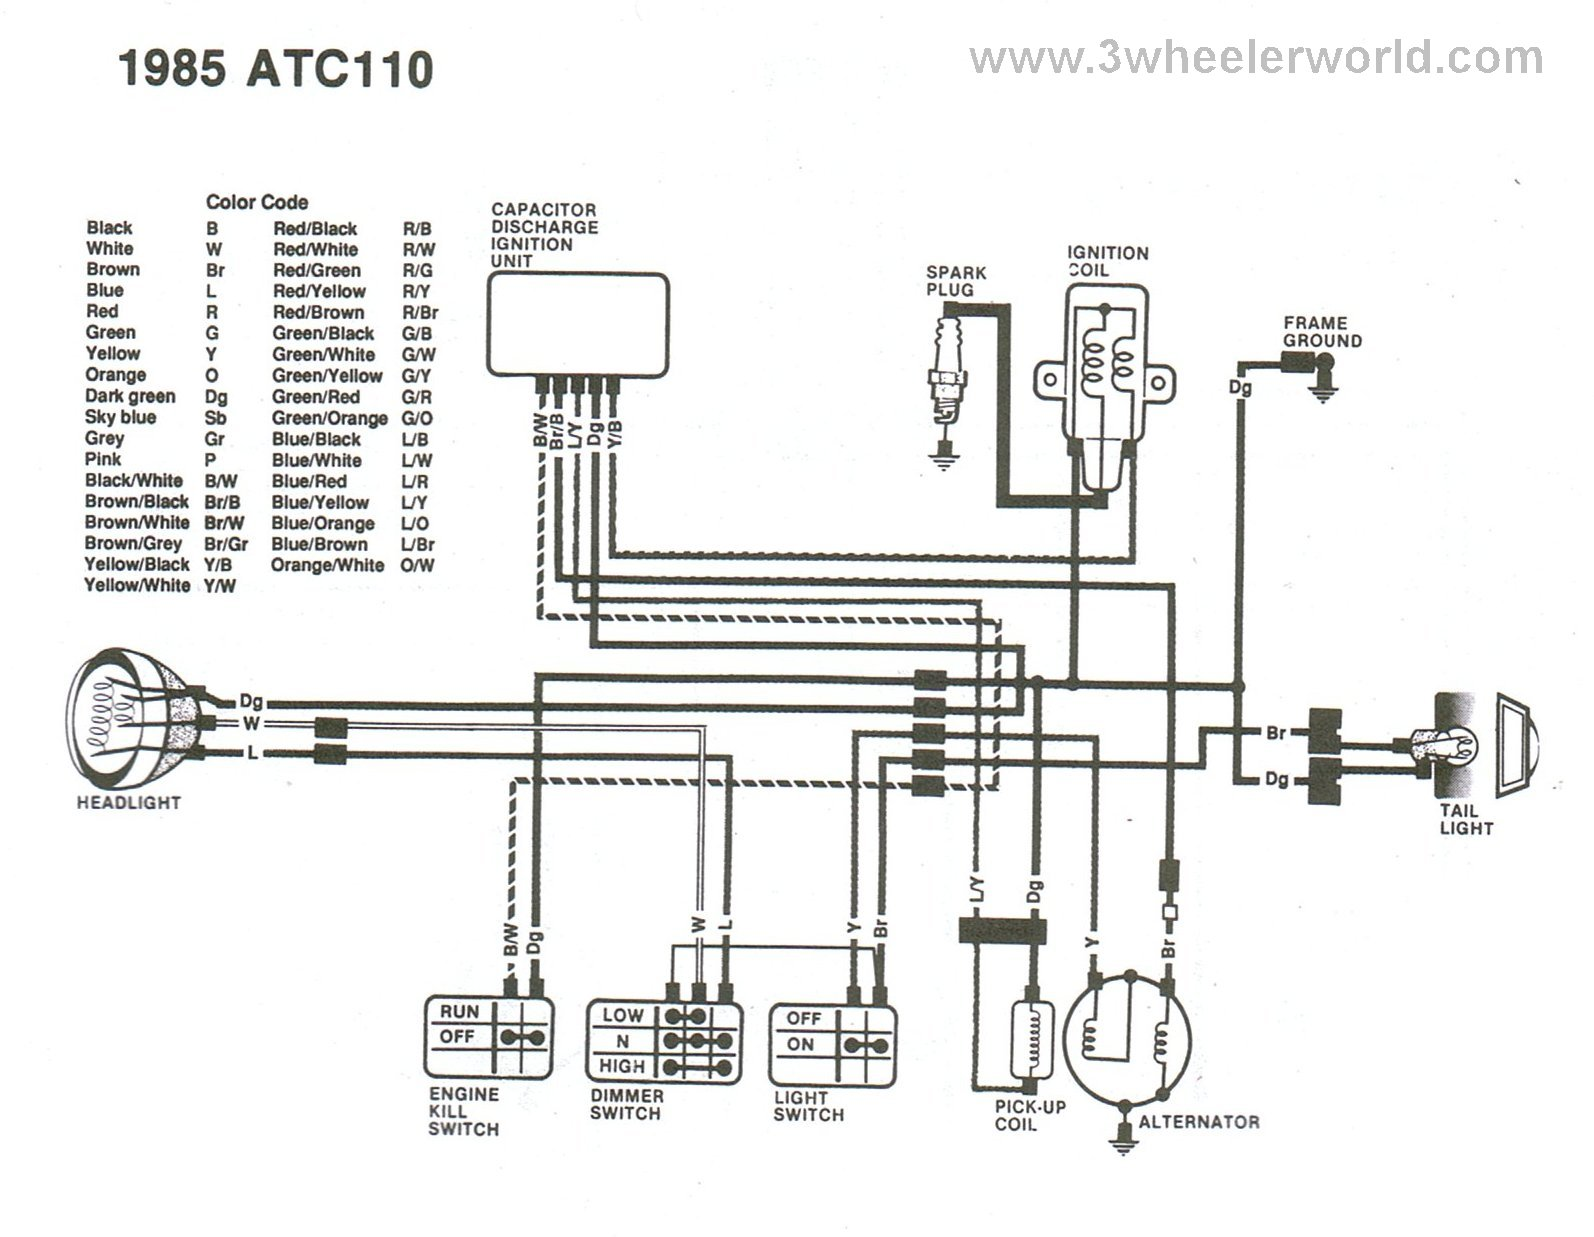 Honda Atc 110 Wiring Diagram Diy Enthusiasts Diagrams Honda Wiring Diagram 3 Wheeler World Tech Help Rh 3wheelerworld Com 1979 1985